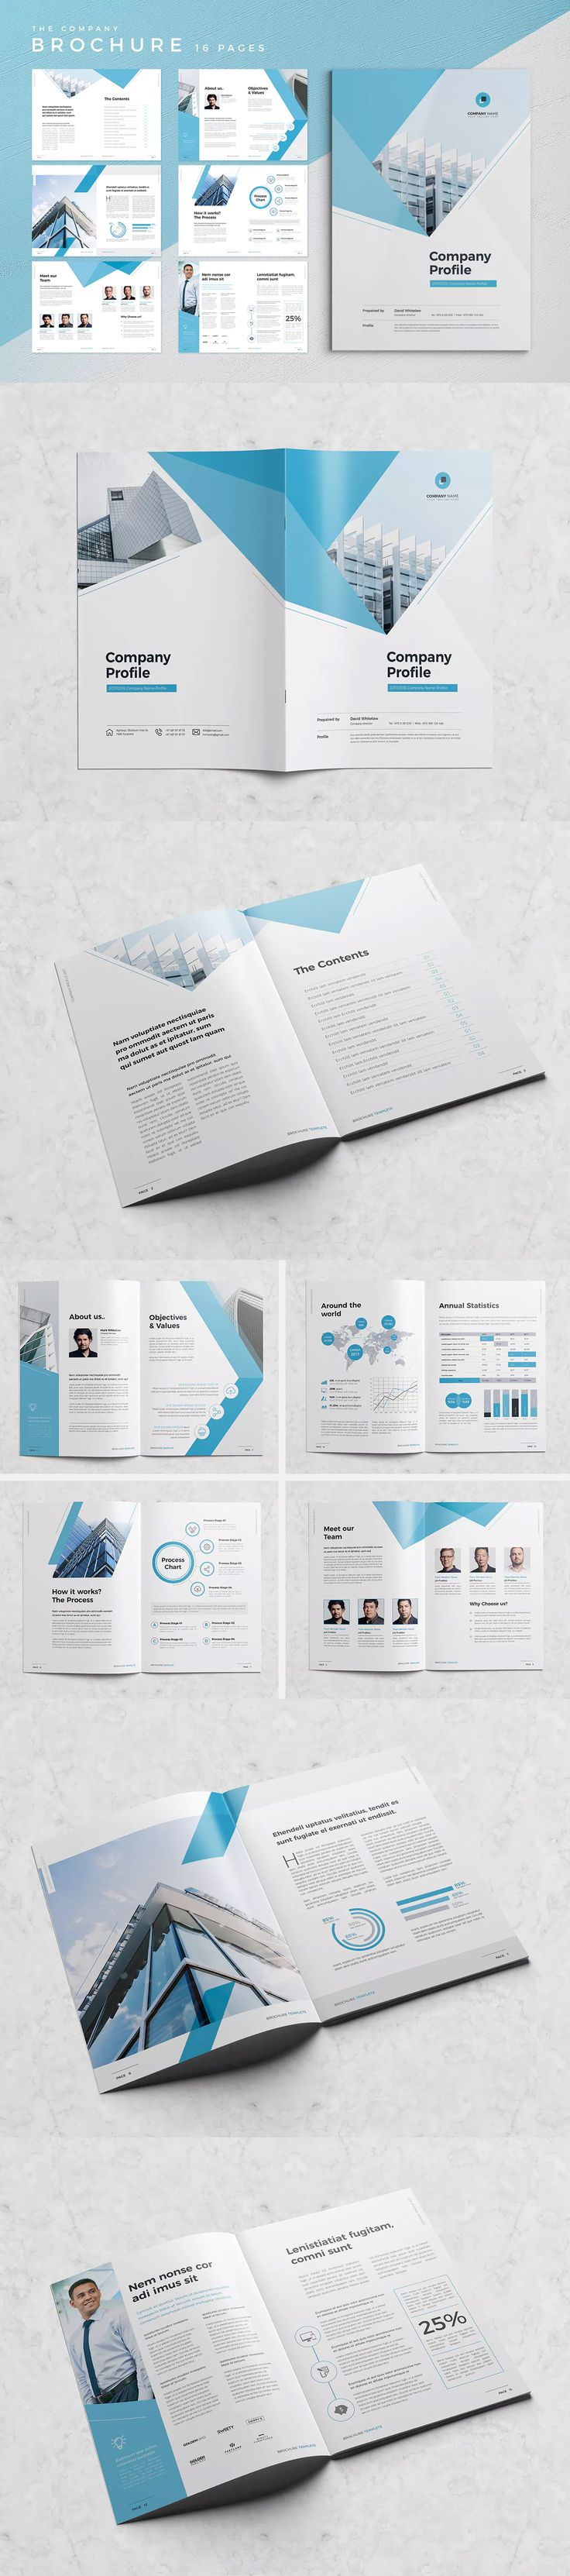 Minimal Company Profile 16 Pages  InDesign INDD A4